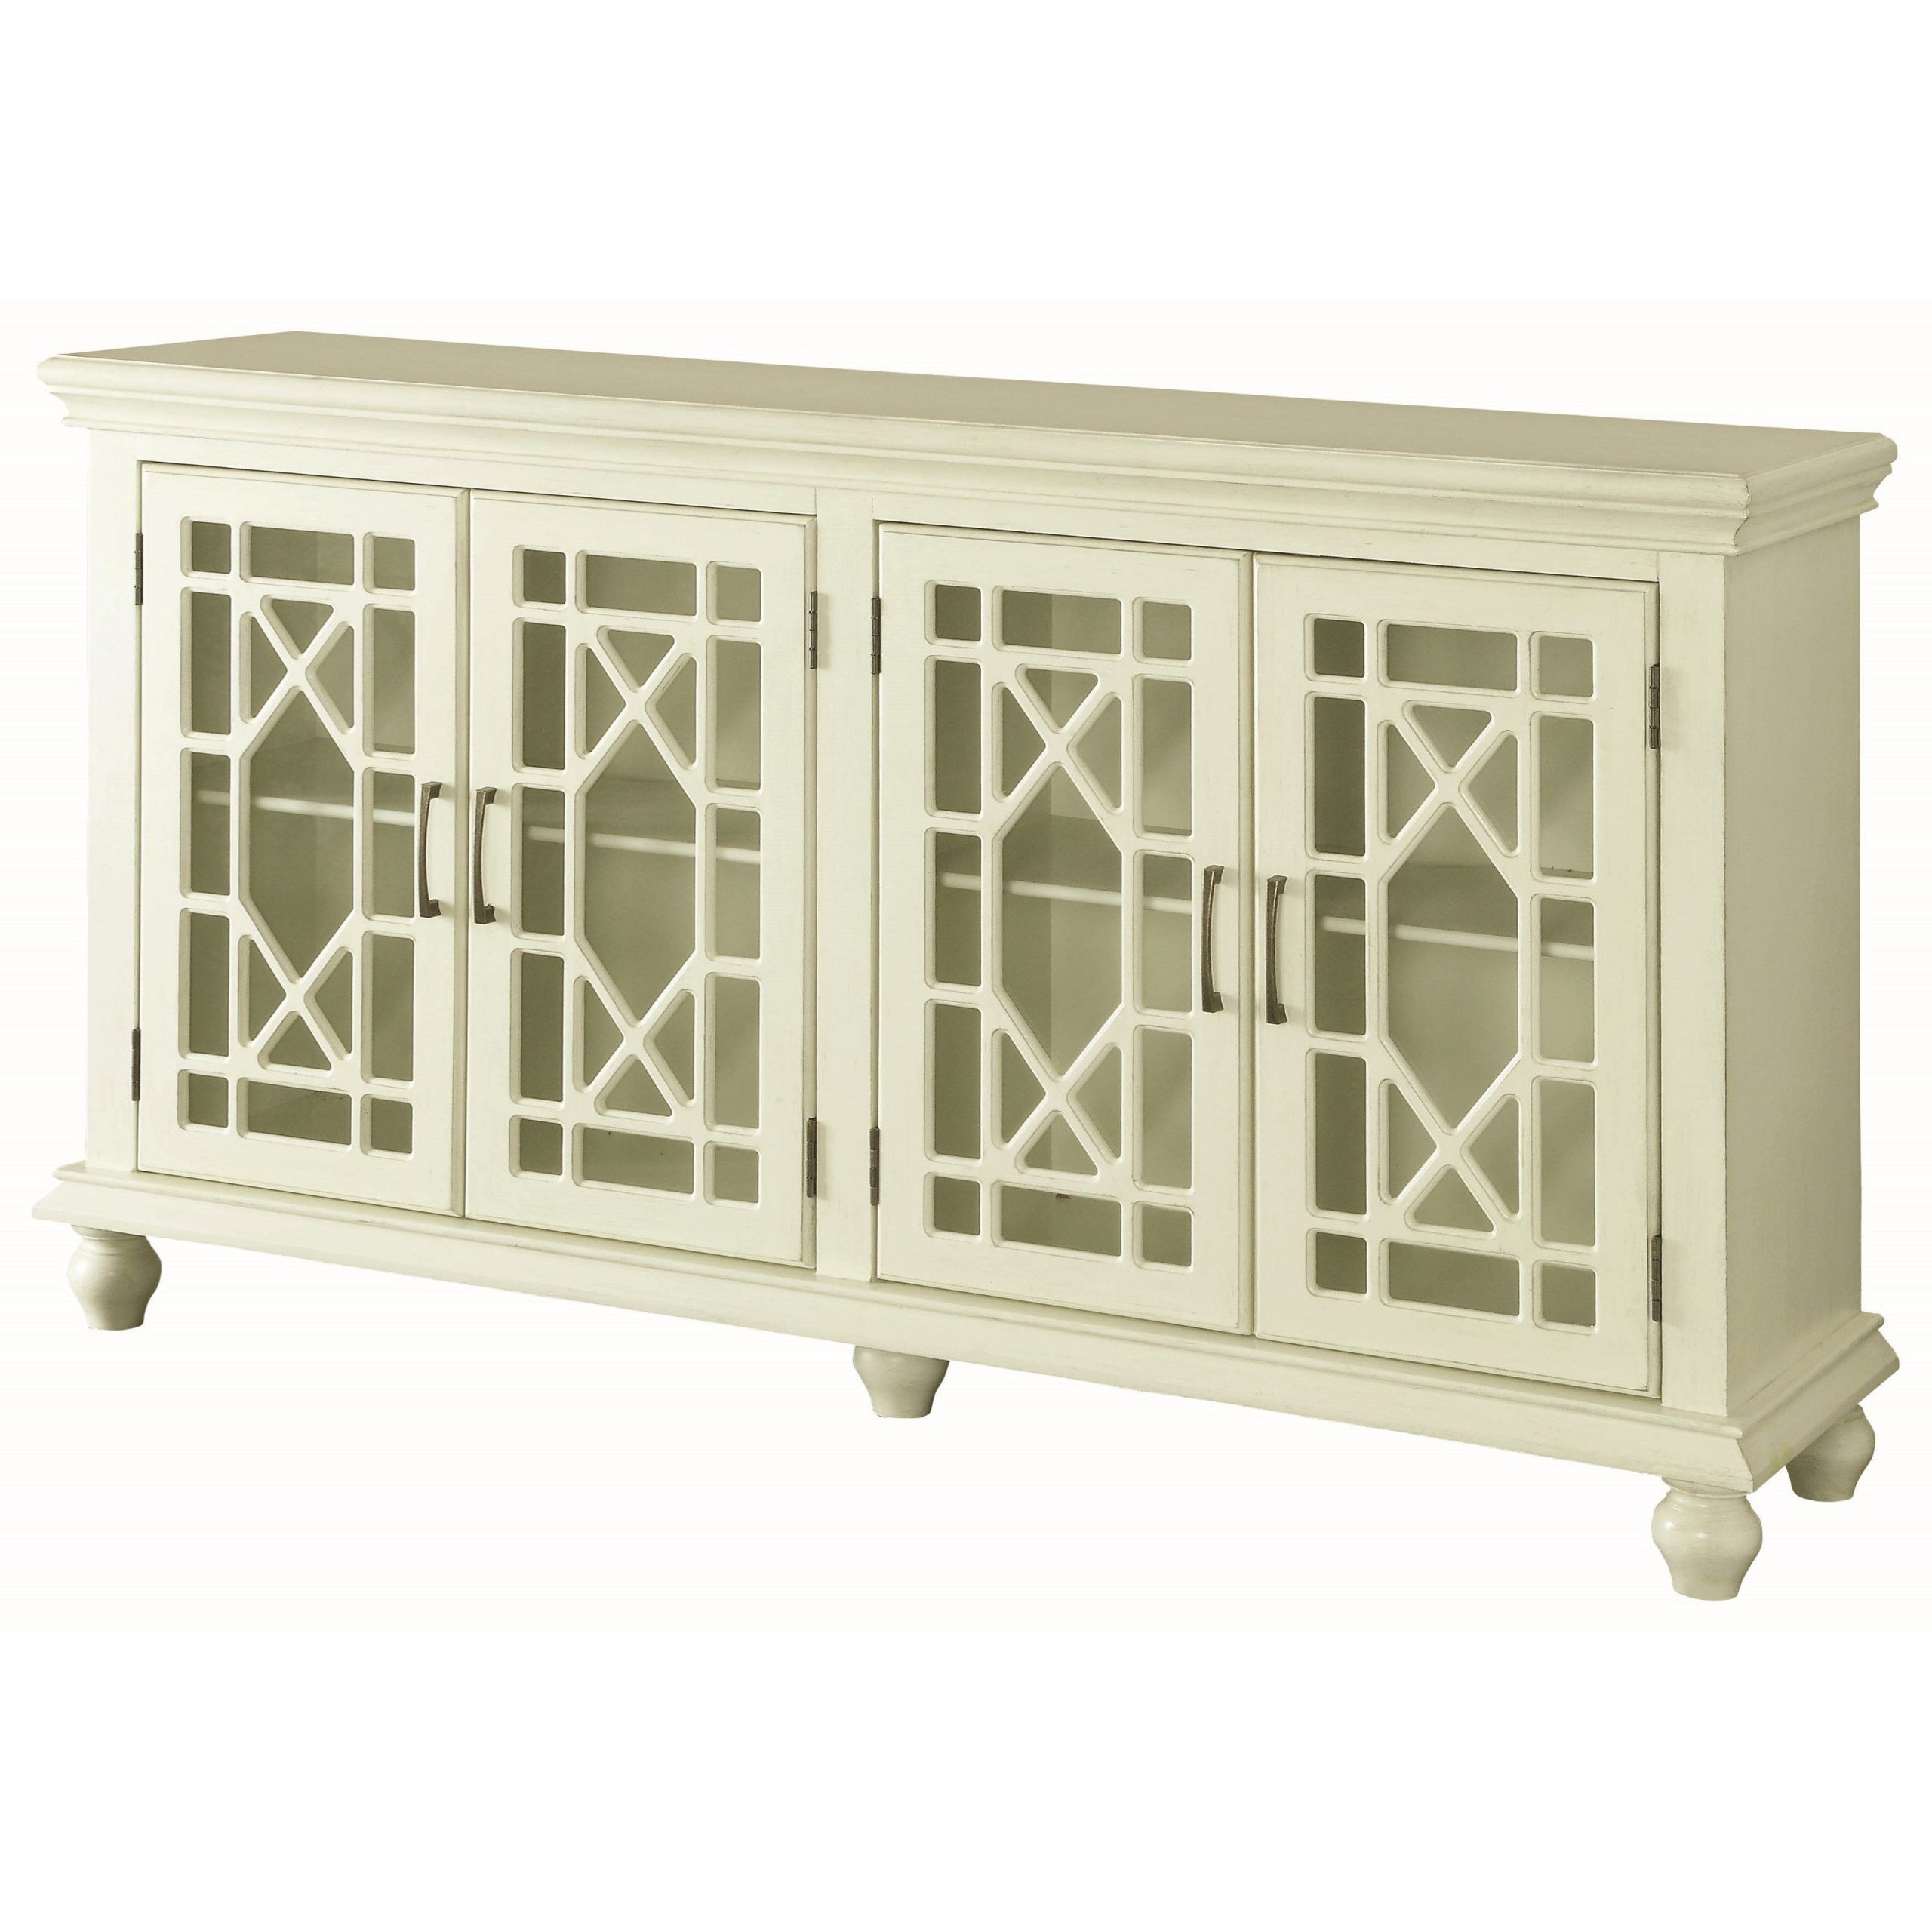 Accent Furniture Cabinets In 2020   Coaster Furniture With Rey Coastal Chic Universal Console 2 Drawer Tv Stands (View 4 of 20)